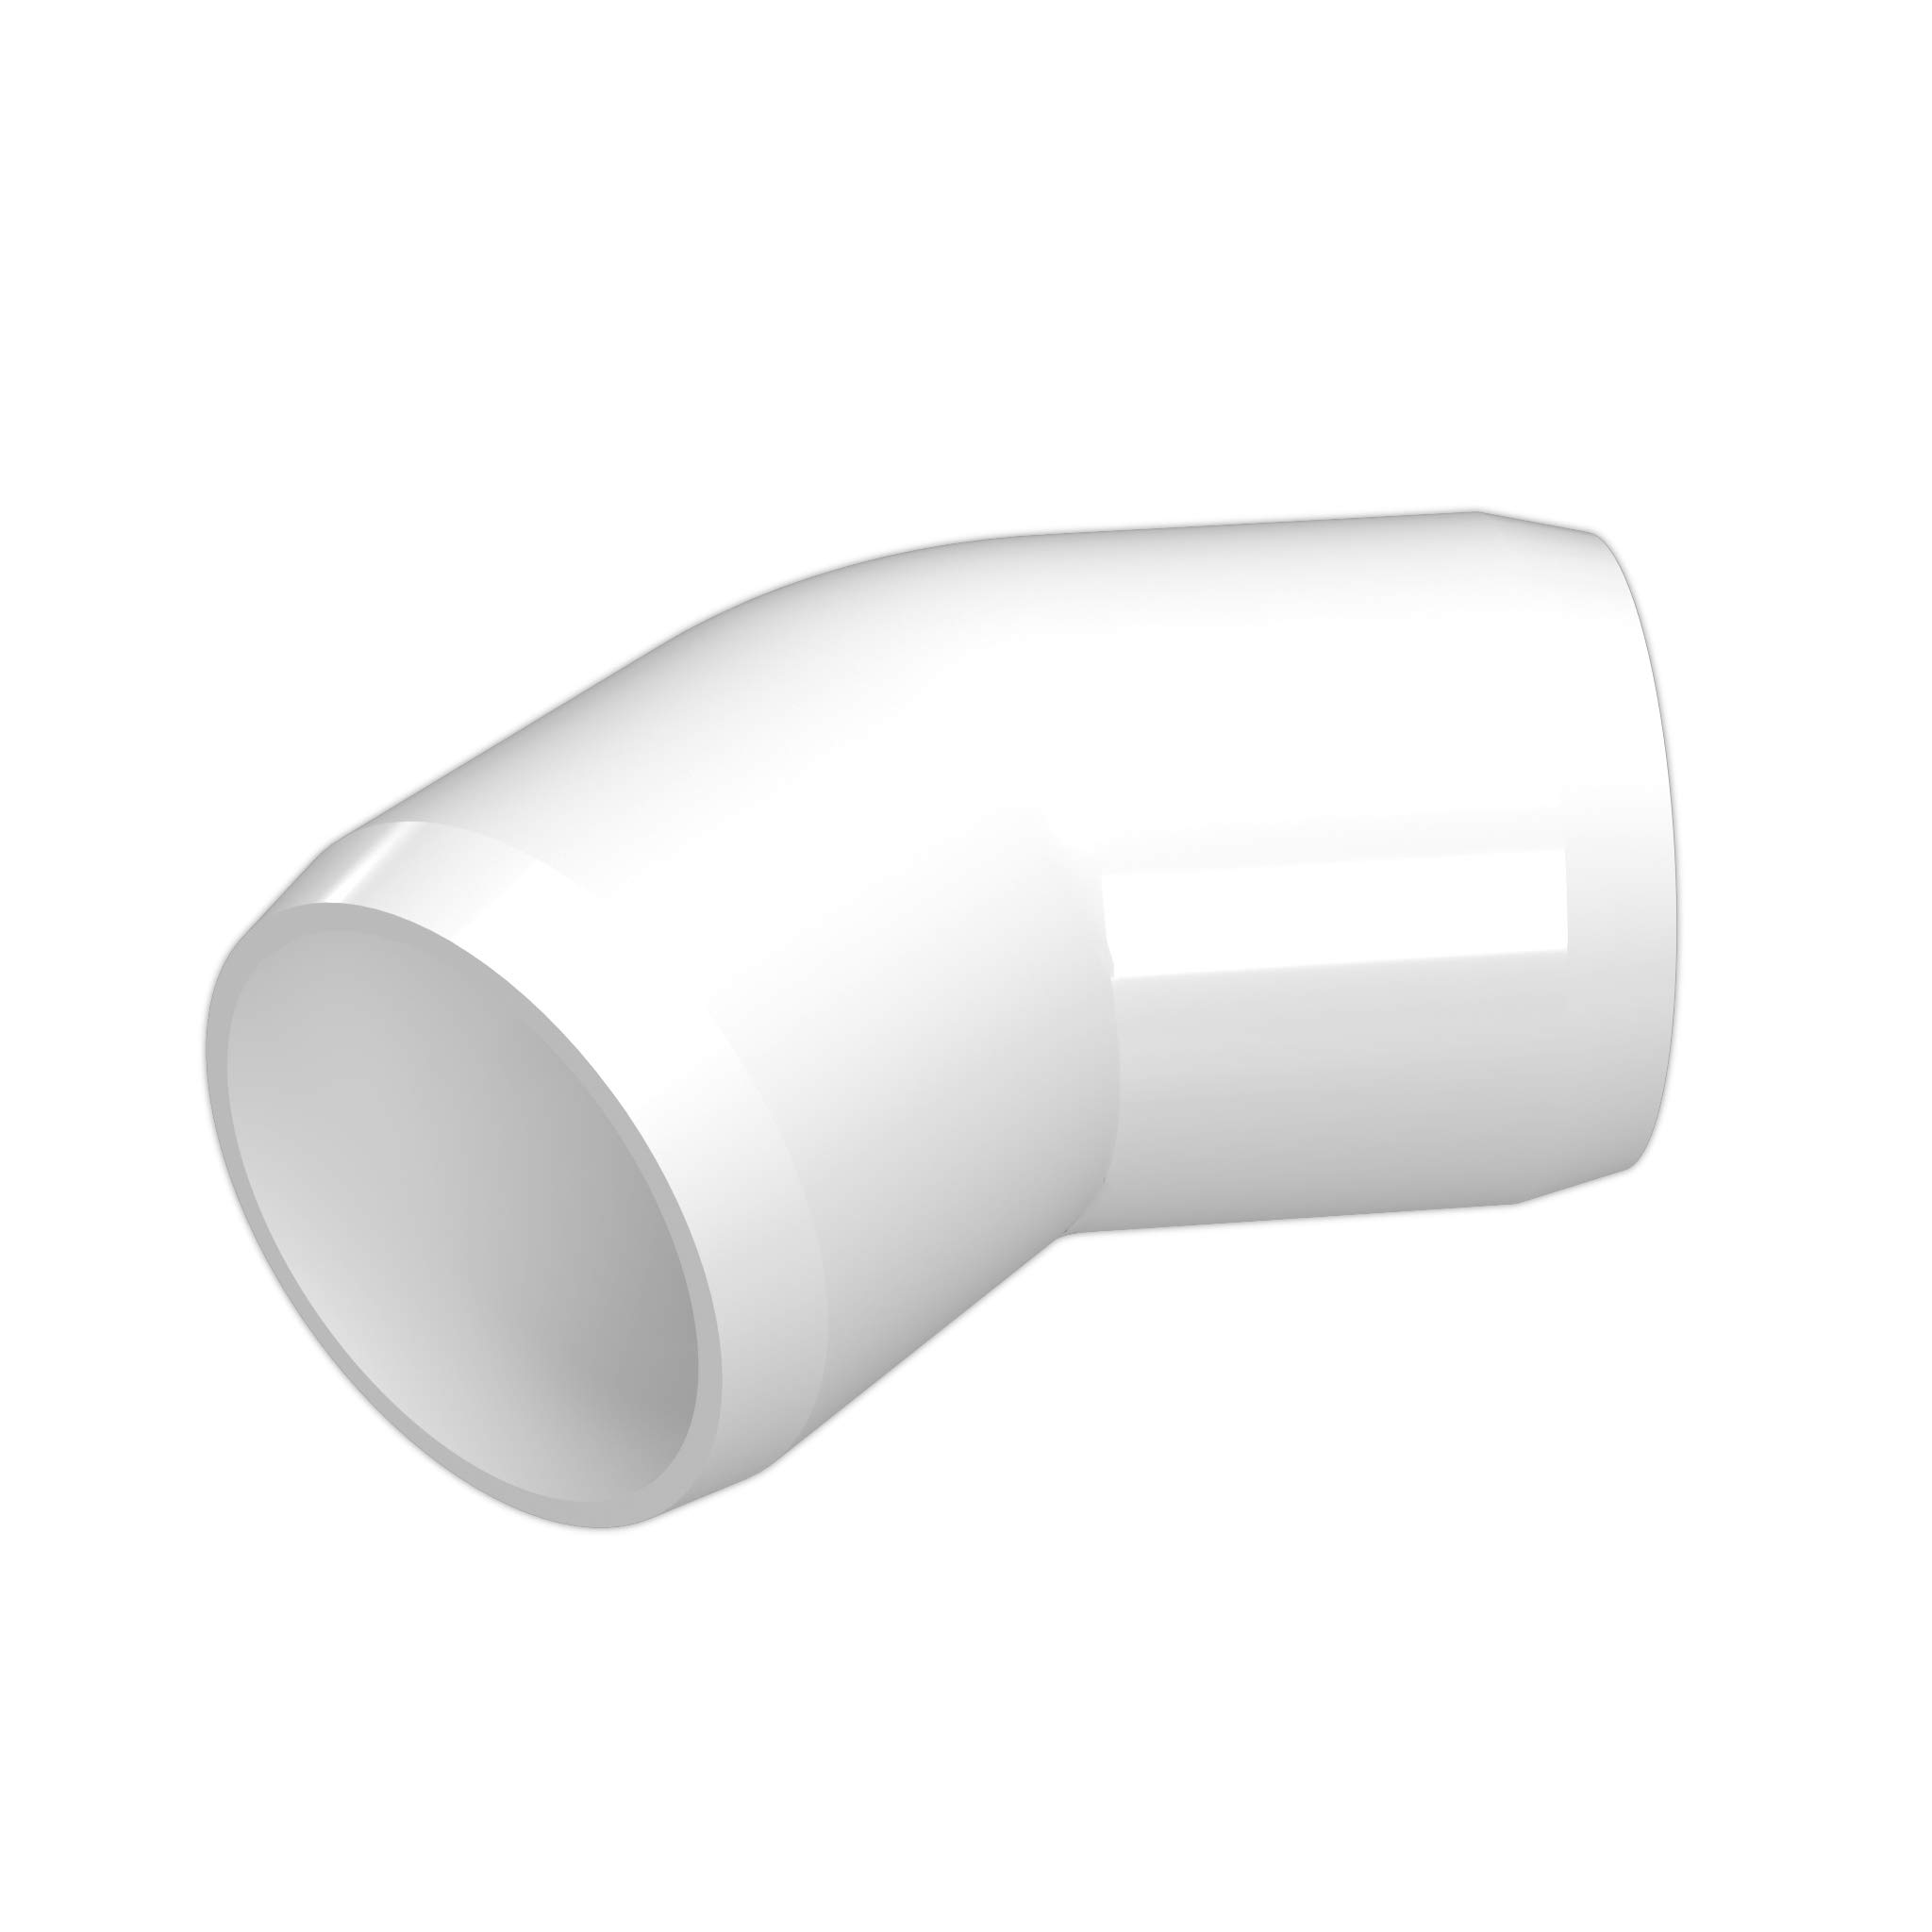 FORMUFIT F00245E-WH-4 45 degree Elbow PVC Fitting, Furniture Grade, 2'' Size, White (Pack of 4)